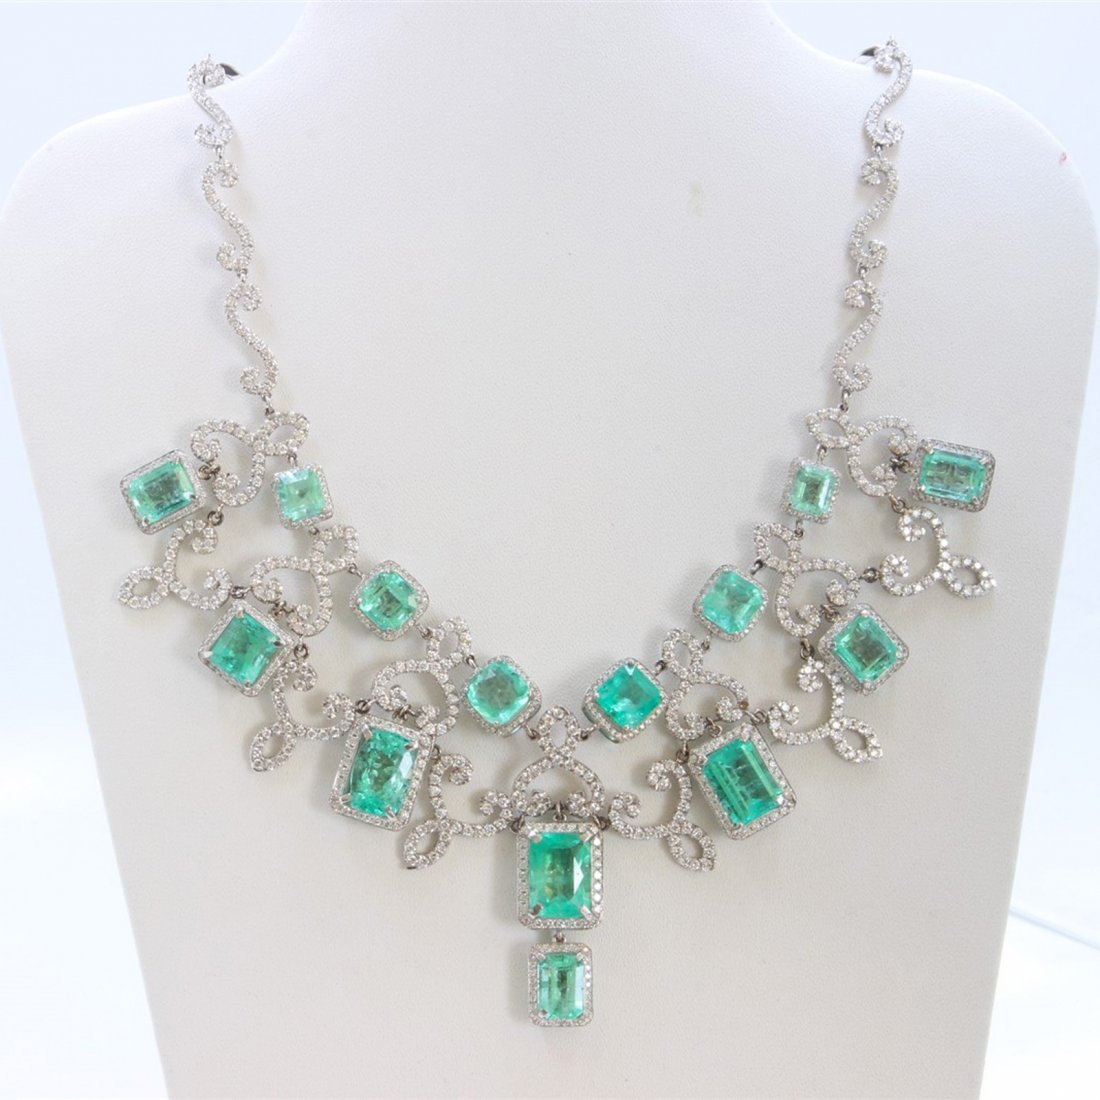 18K WHITE GOLD EMERALD NECKLACE - 3